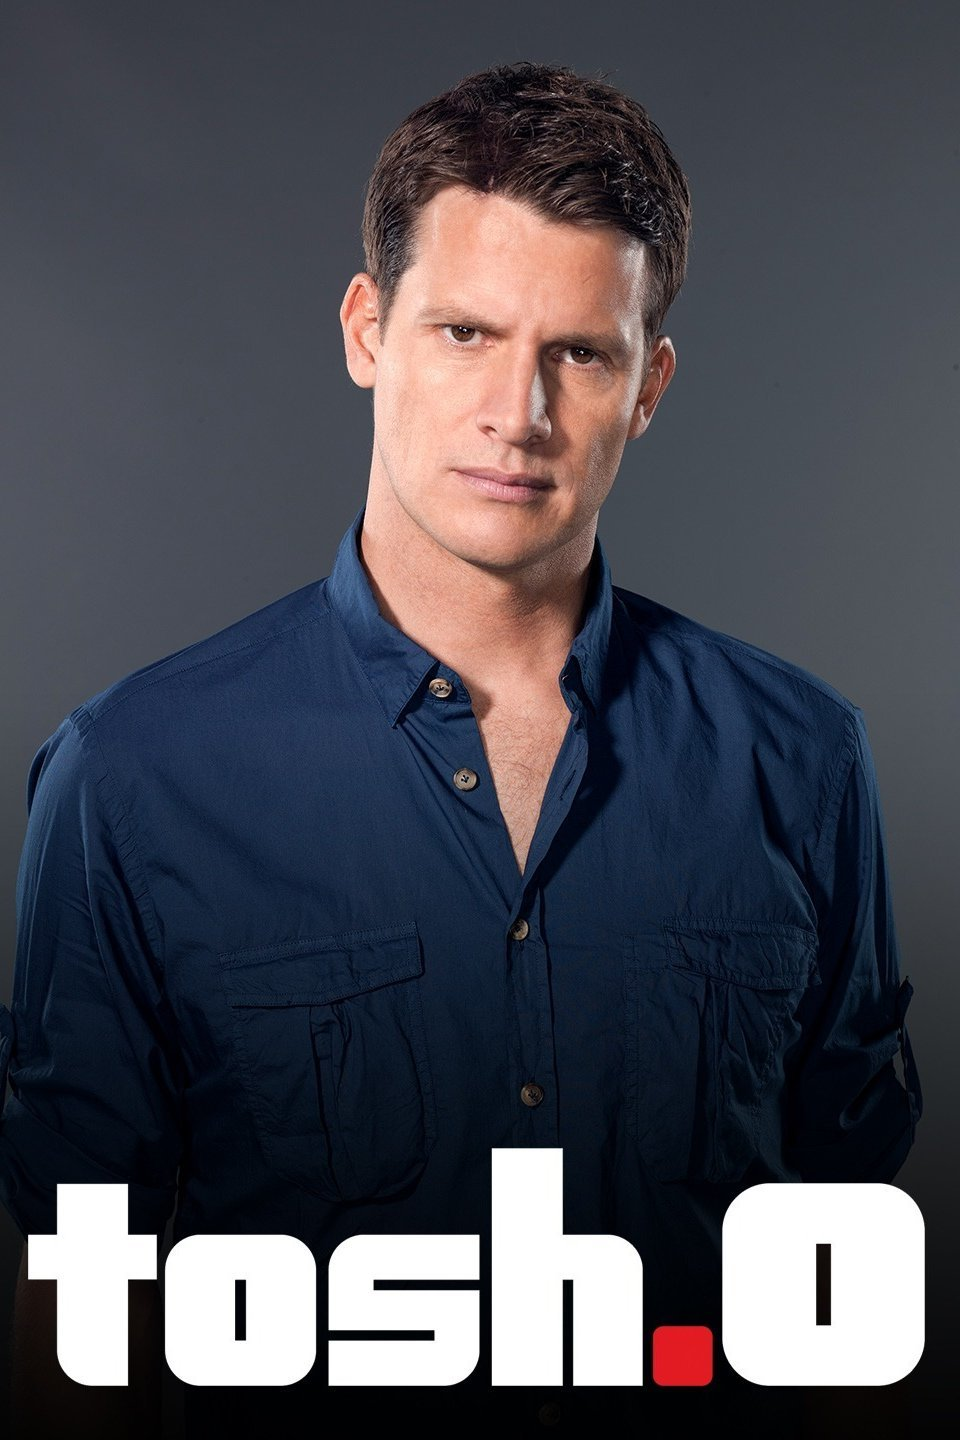 Tosh.0 Season 10  Full Episodes 123movies